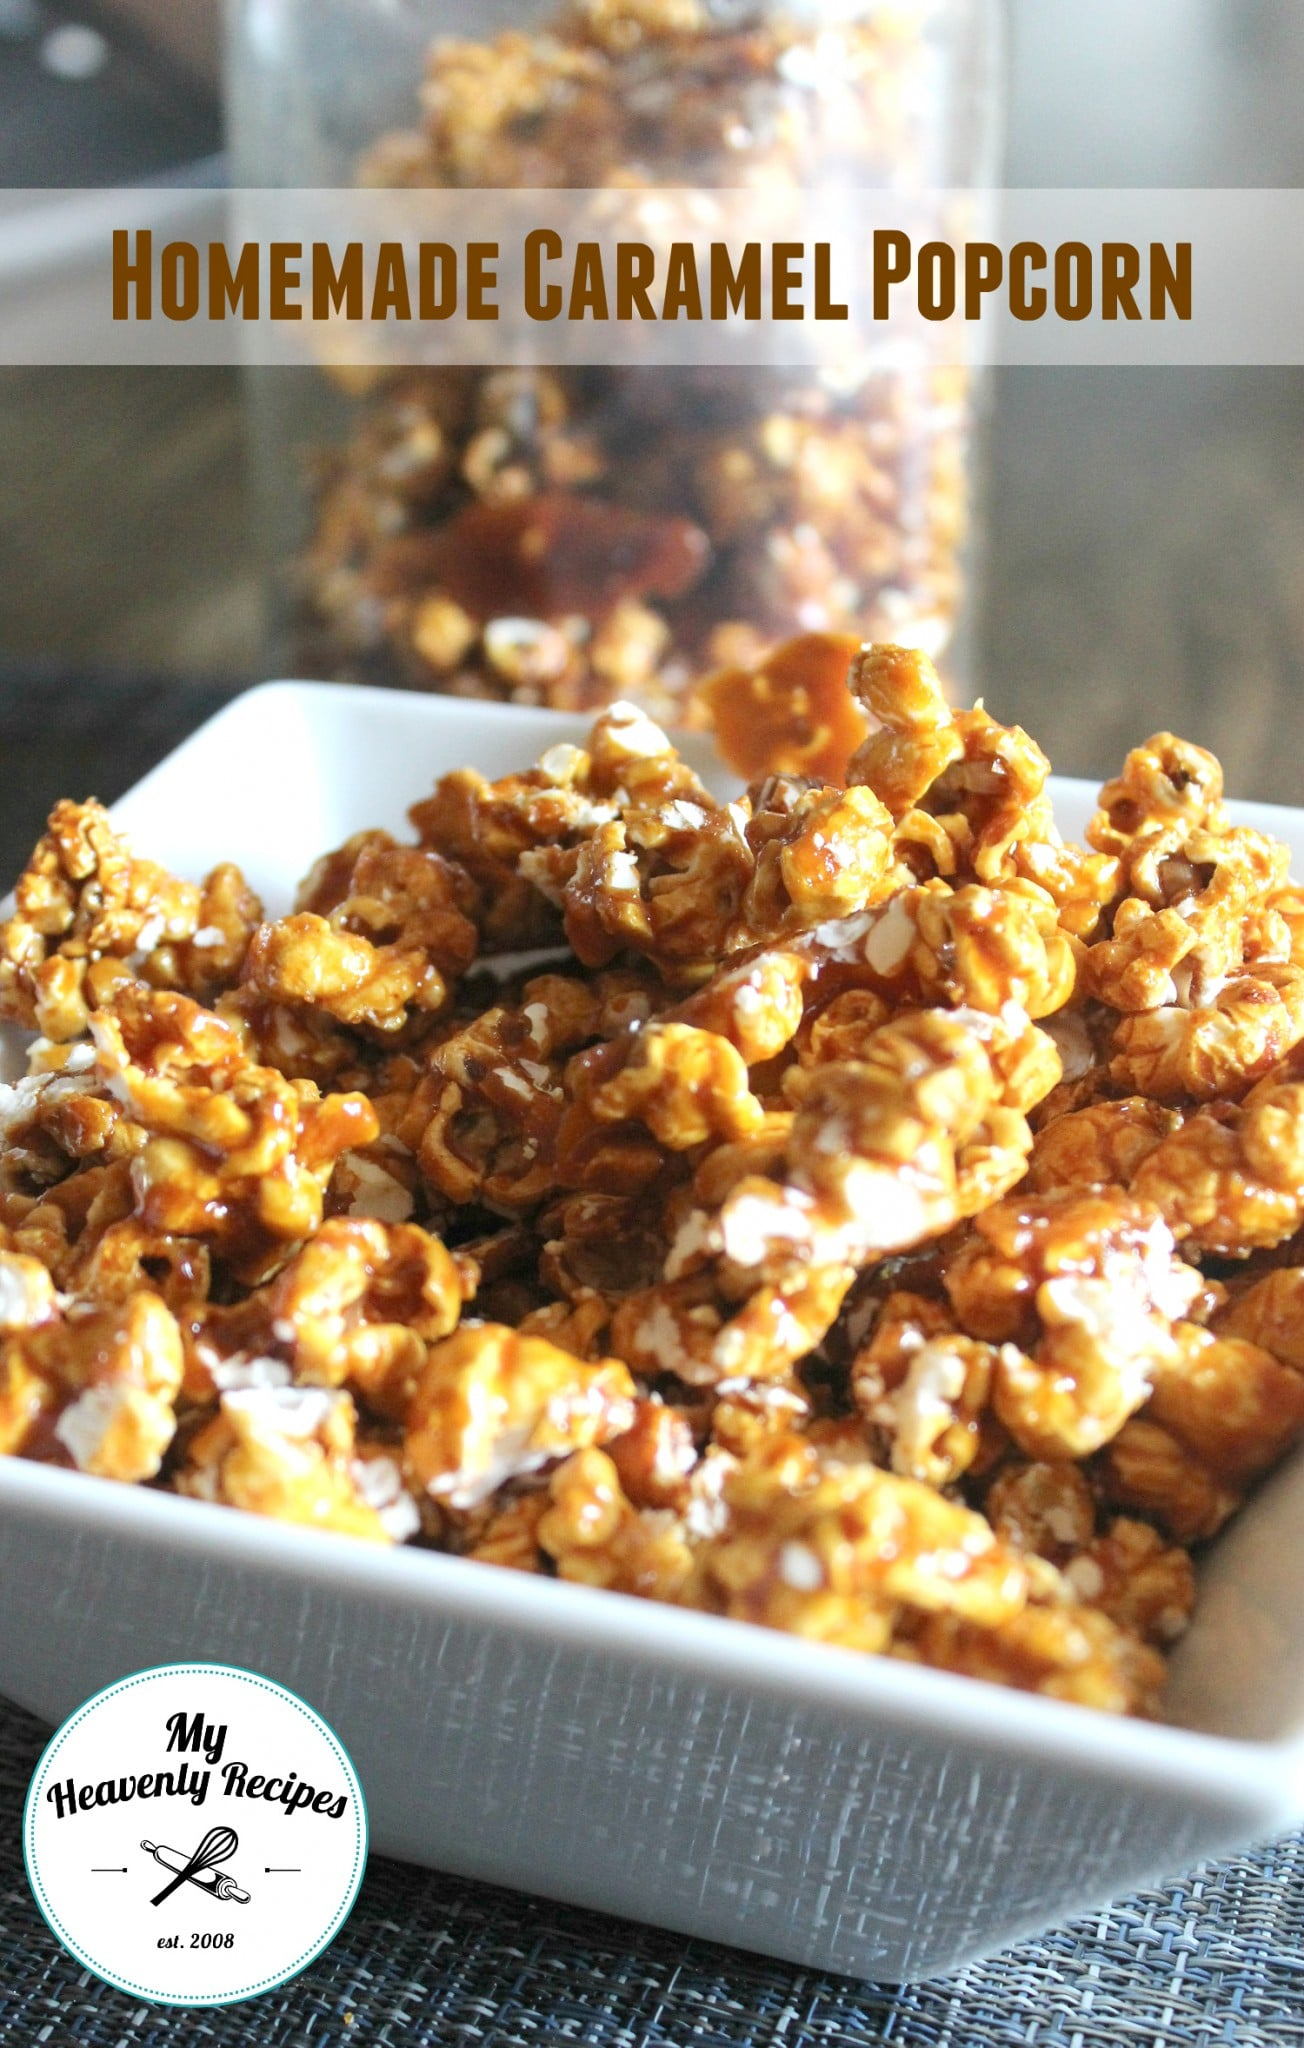 Homemade Caramel Popcorn Video My Heavenly Recipes